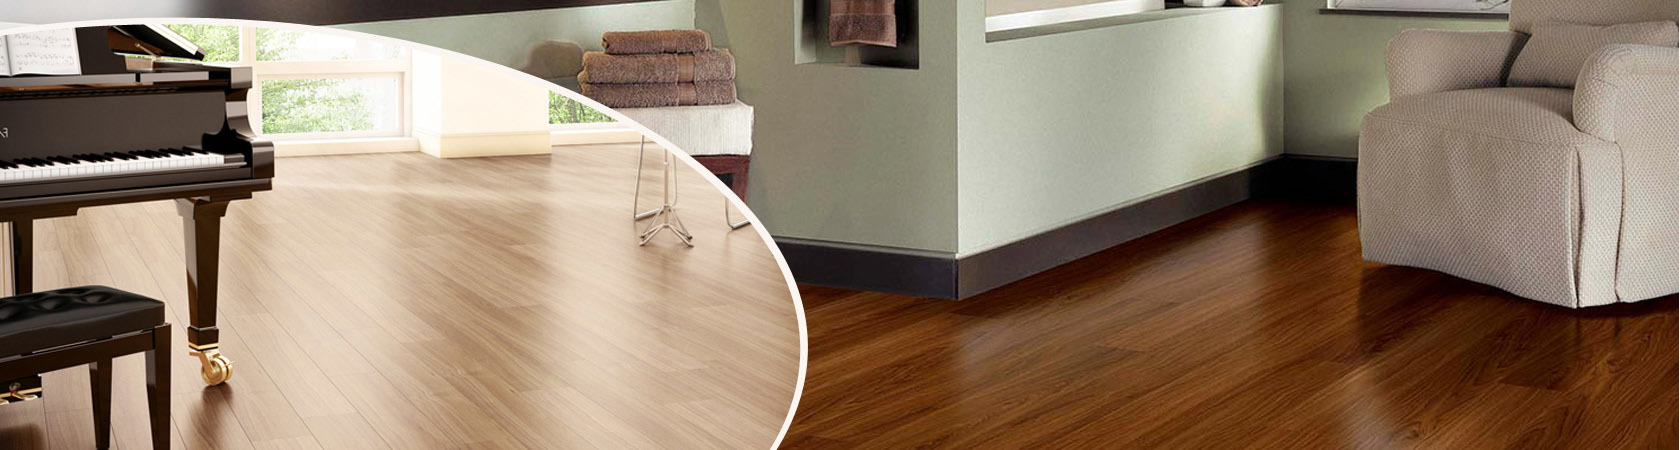 Choose A Modern And Hard Wearing Option With Vinyl Flooring